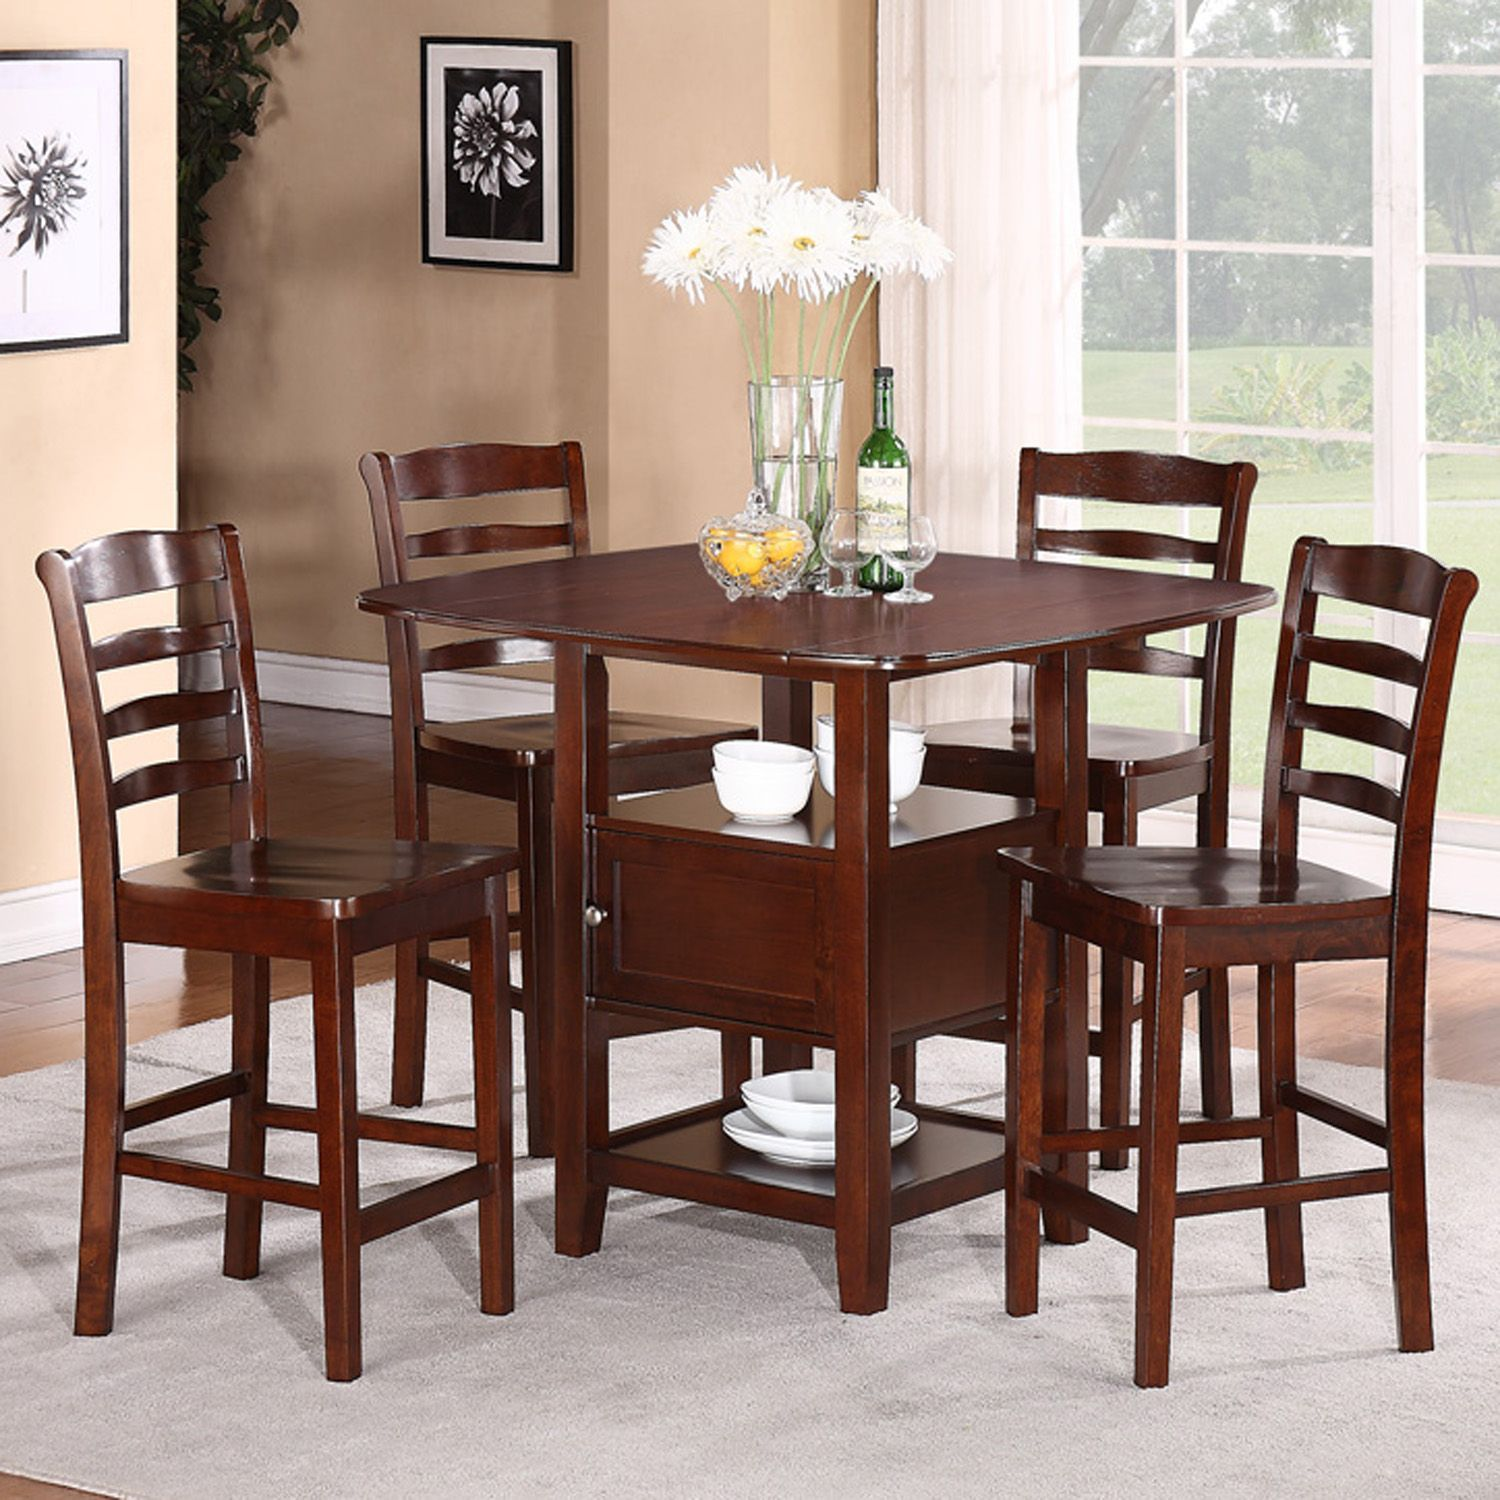 5pc Dining Set with Storage  Shop Your Way Online